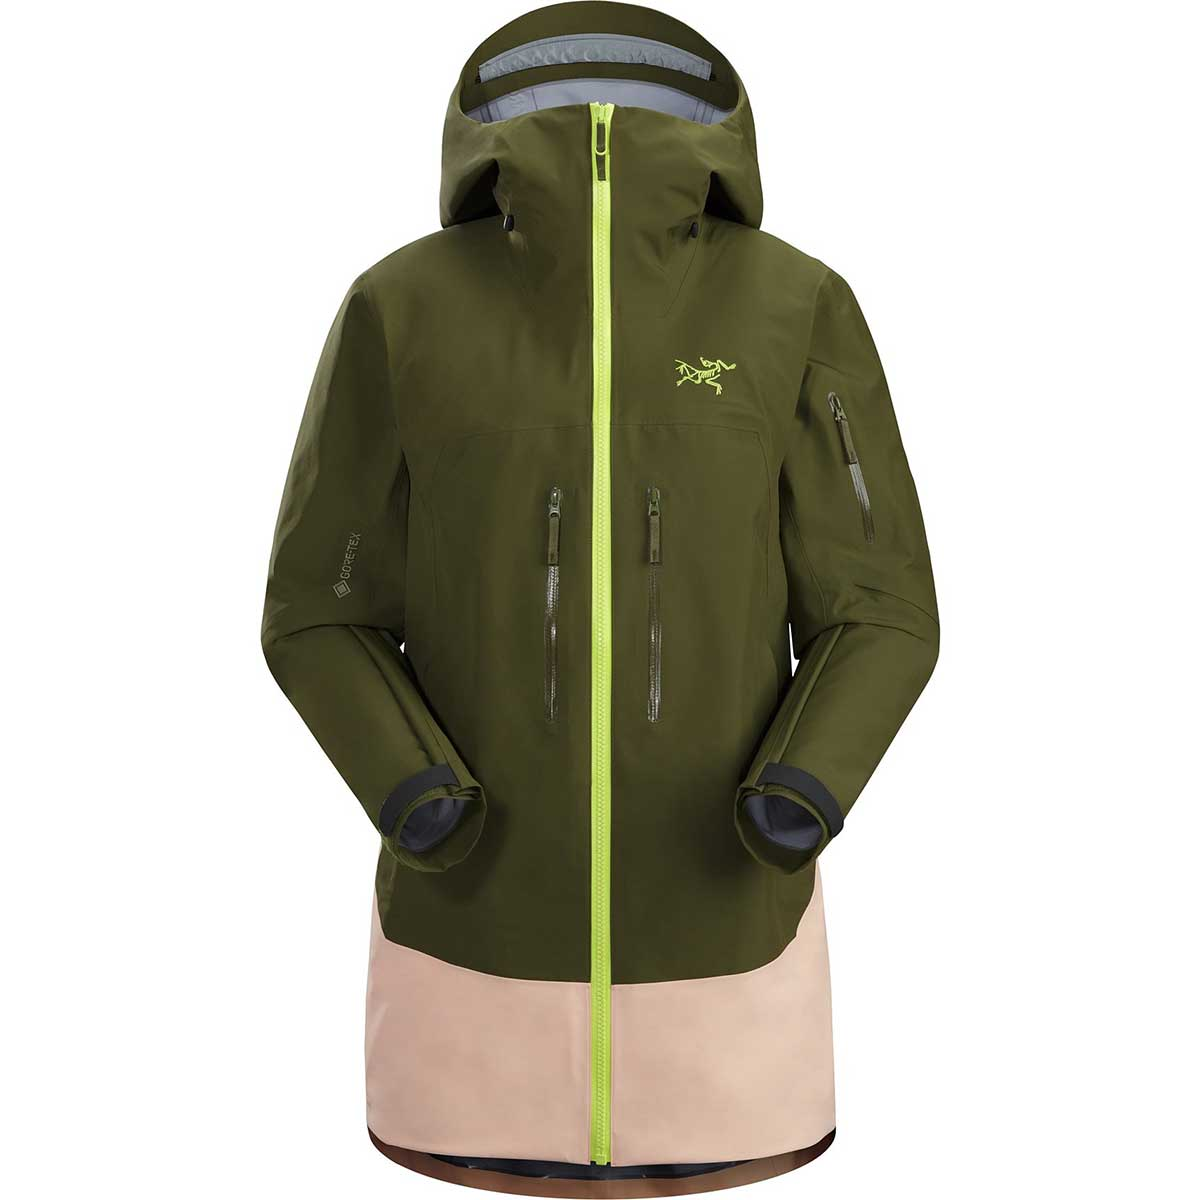 Arcteryx women's Sentinel LT Jacket in Treeline Tonic front view